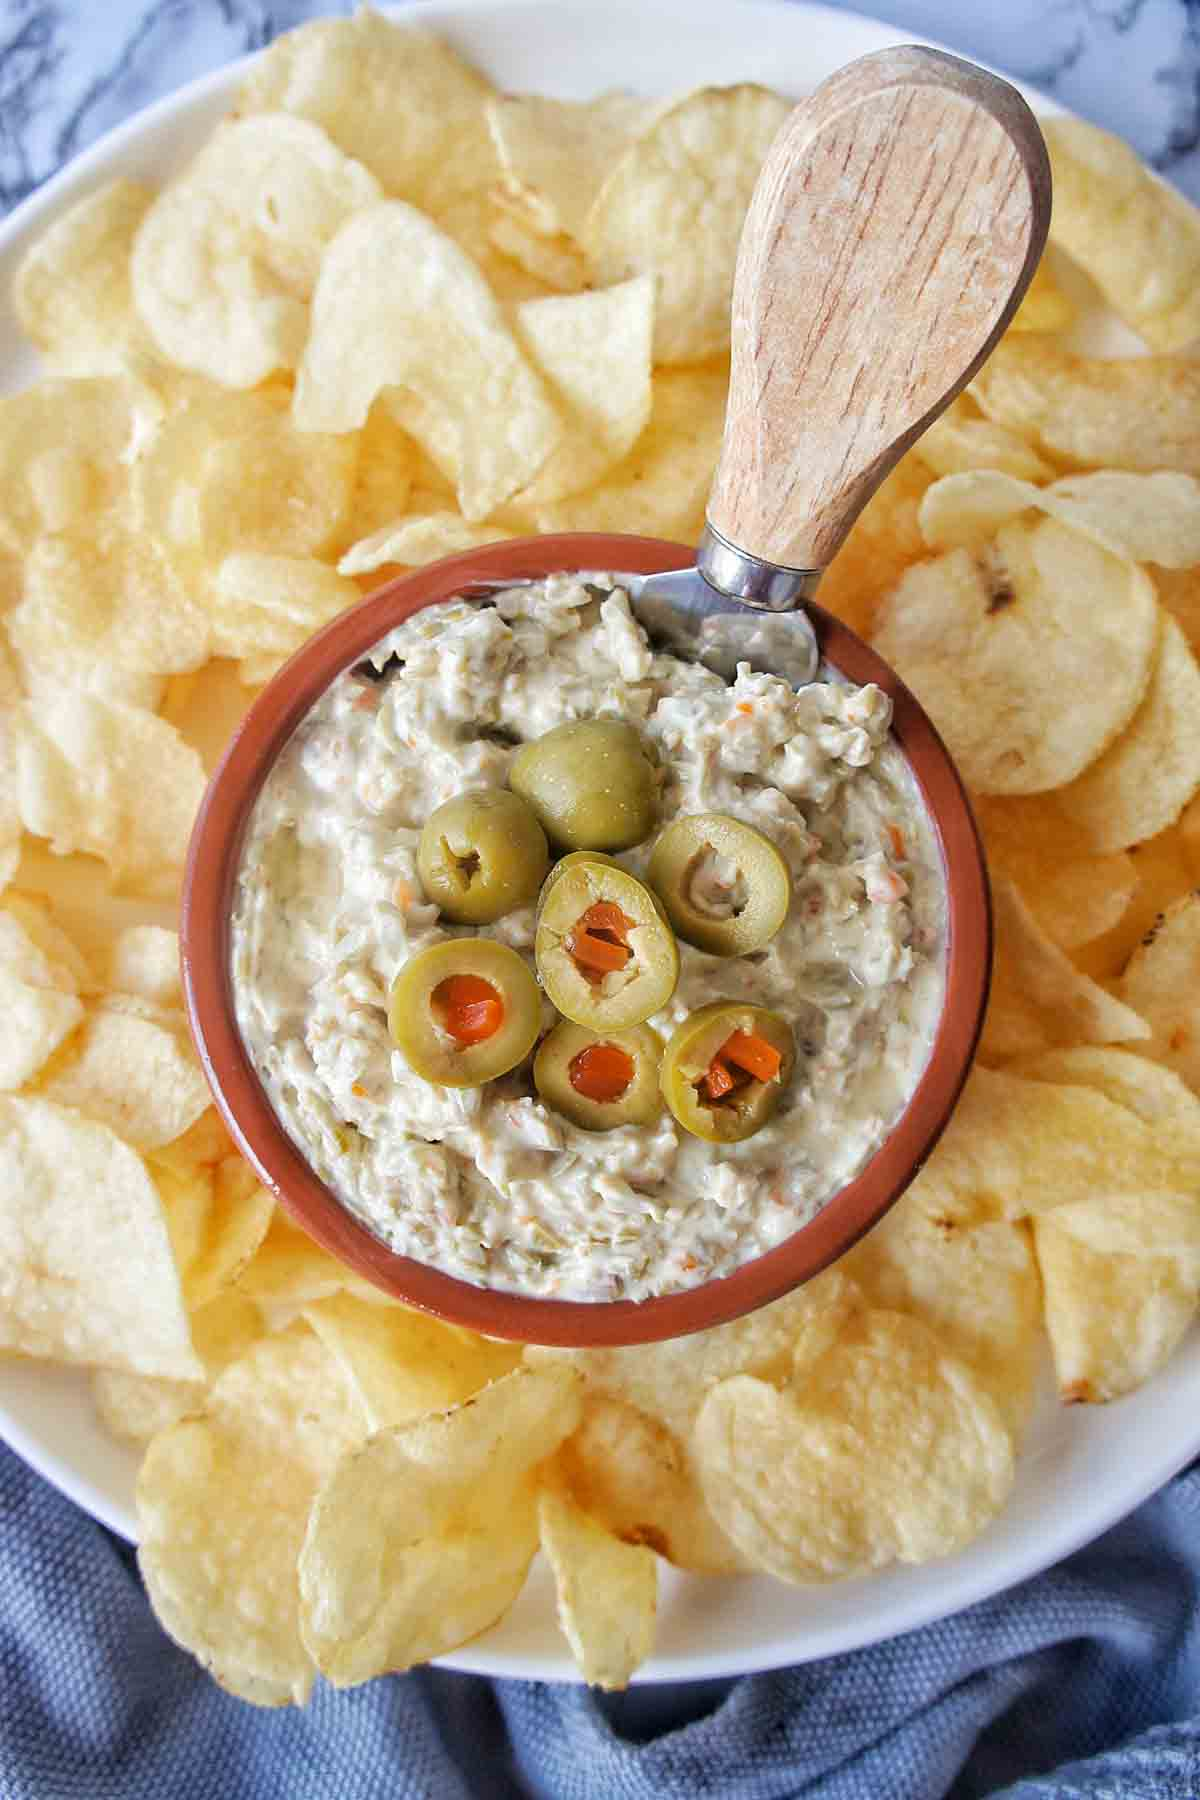 Green Olive Dip in a bowl surrounded by chips